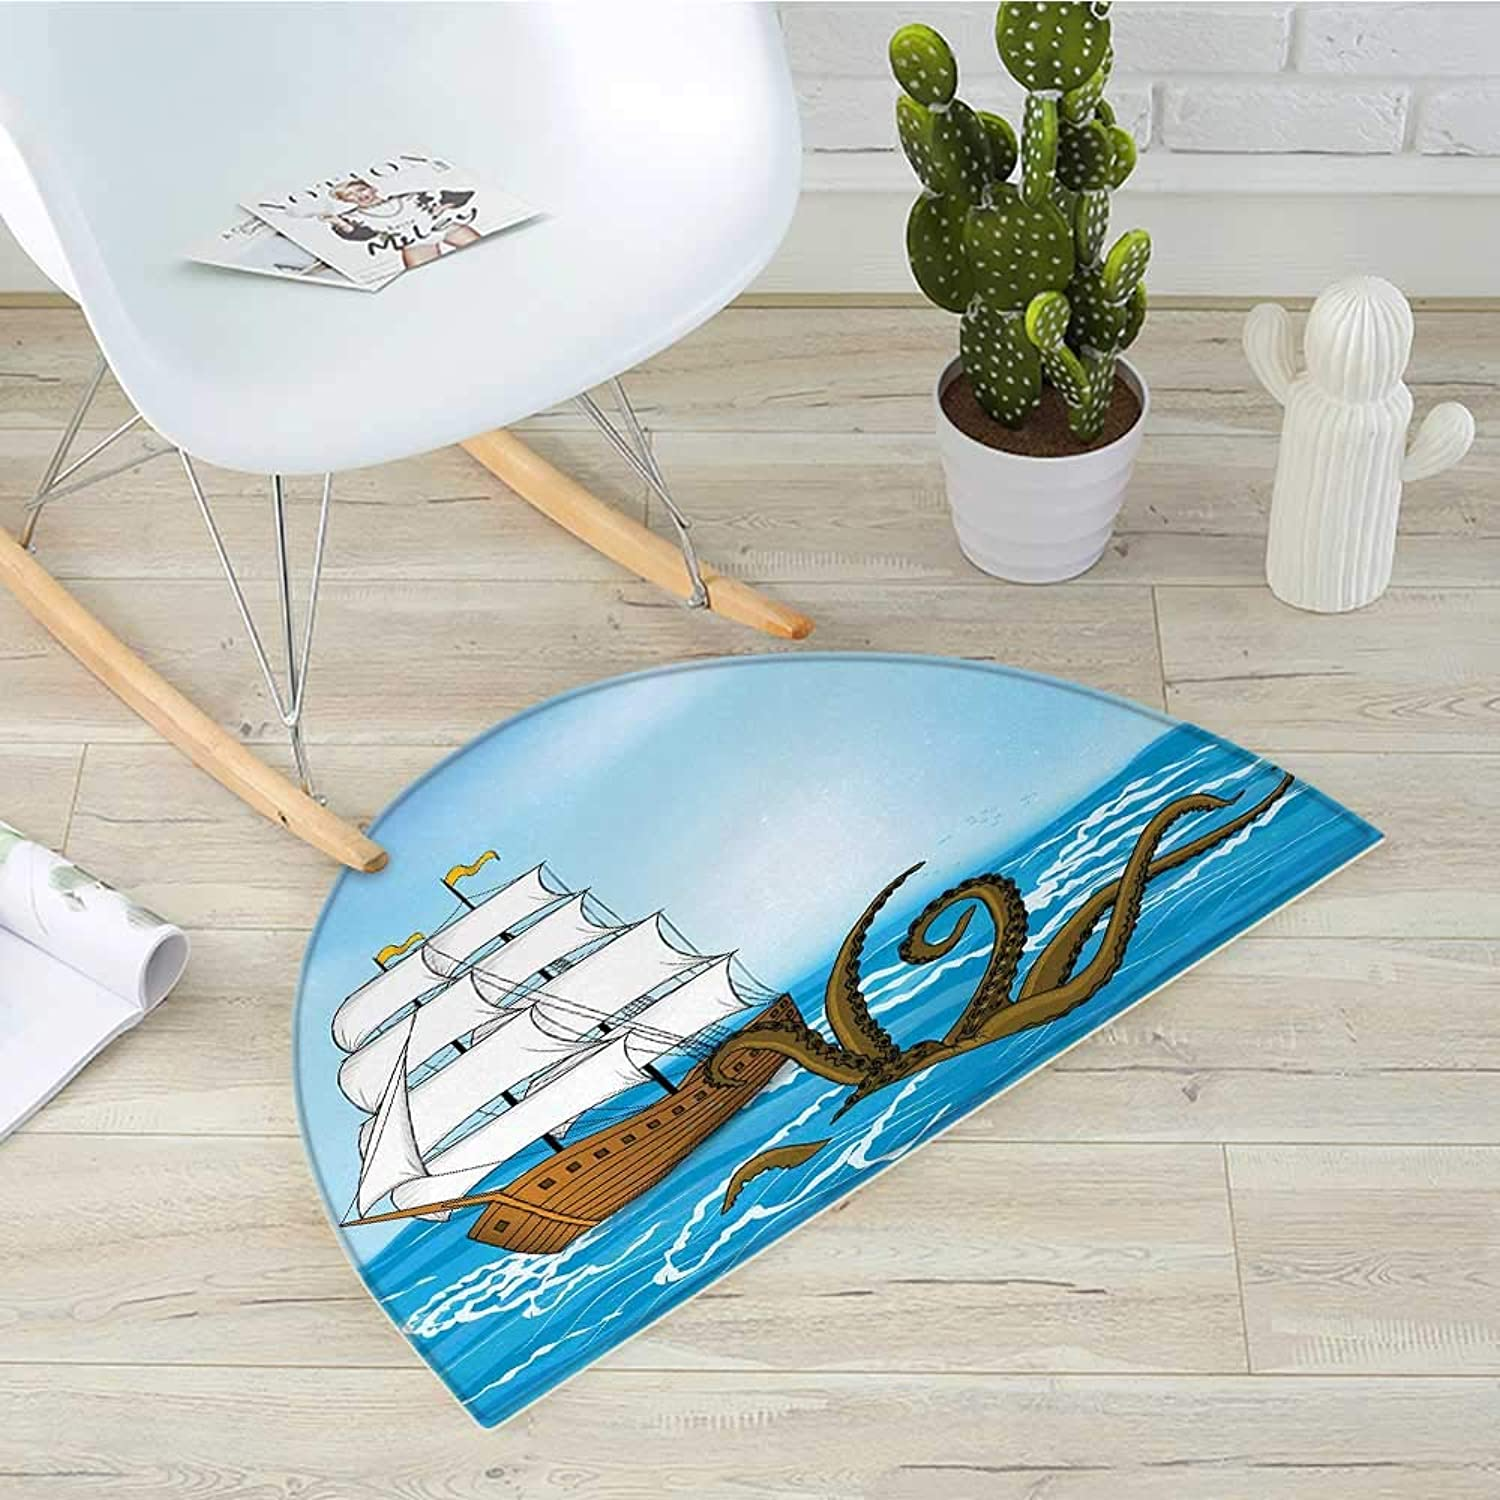 Kraken Semicircle Doormat Old Sailing Ship in Waves and Kraken Adventure Journey Travel Graphic Image Print Halfmoon doormats H 39.3  xD 59  bluee Brown